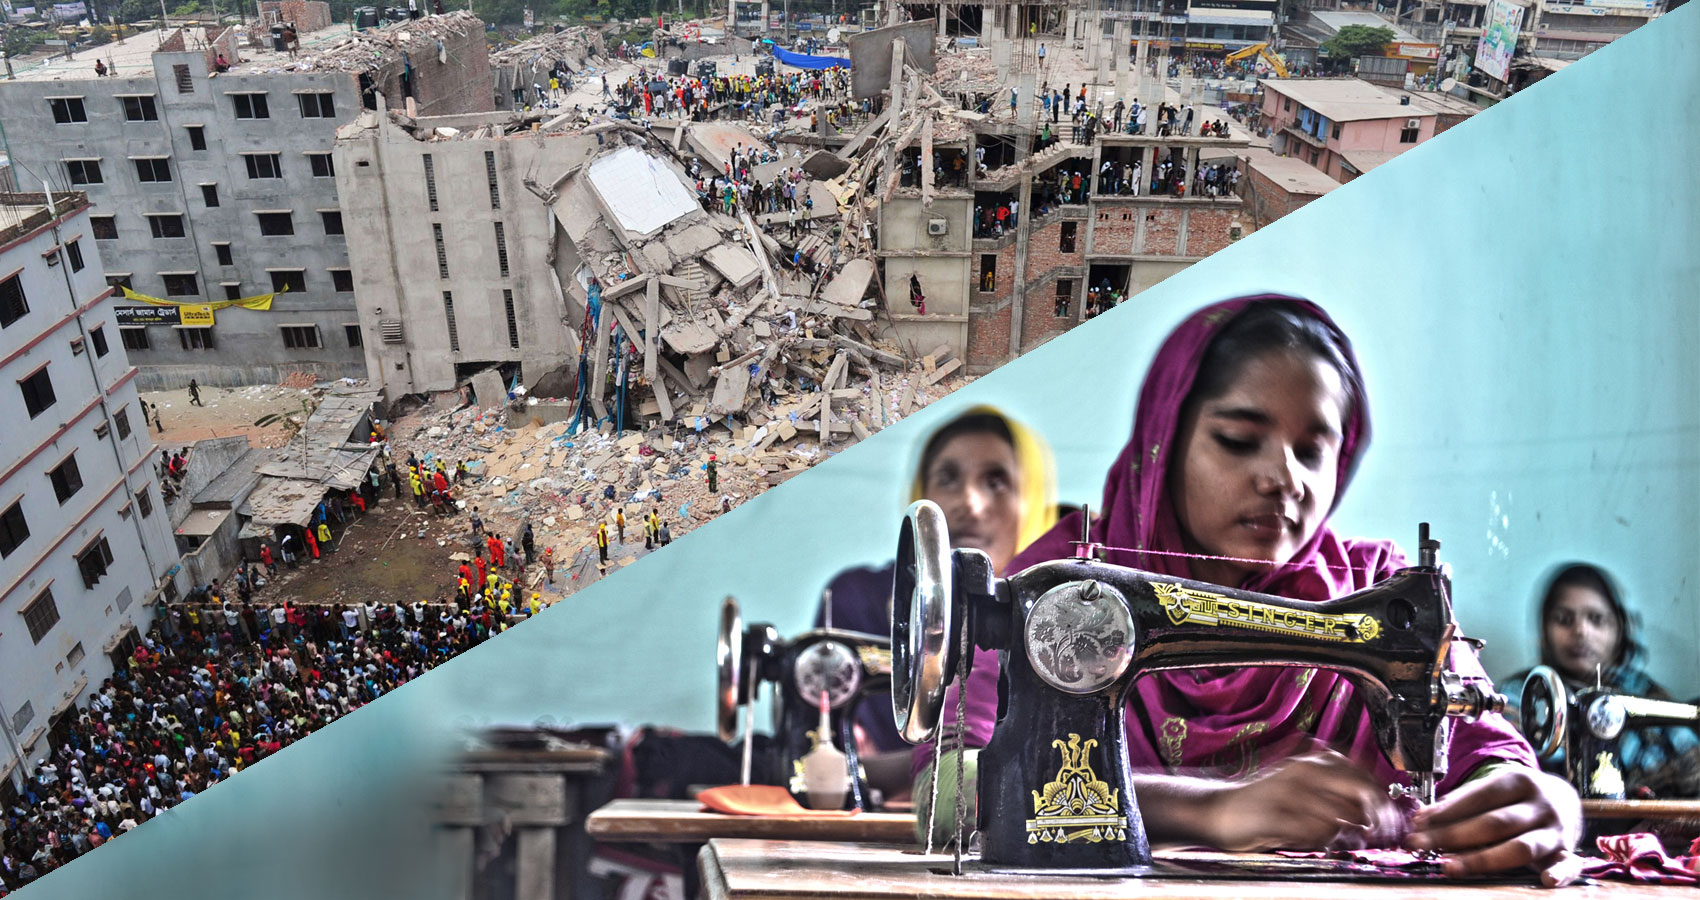 Rana Plaza Collapse (Her Version Of A Happy Day) by Steve Pearson at Spillwords.com